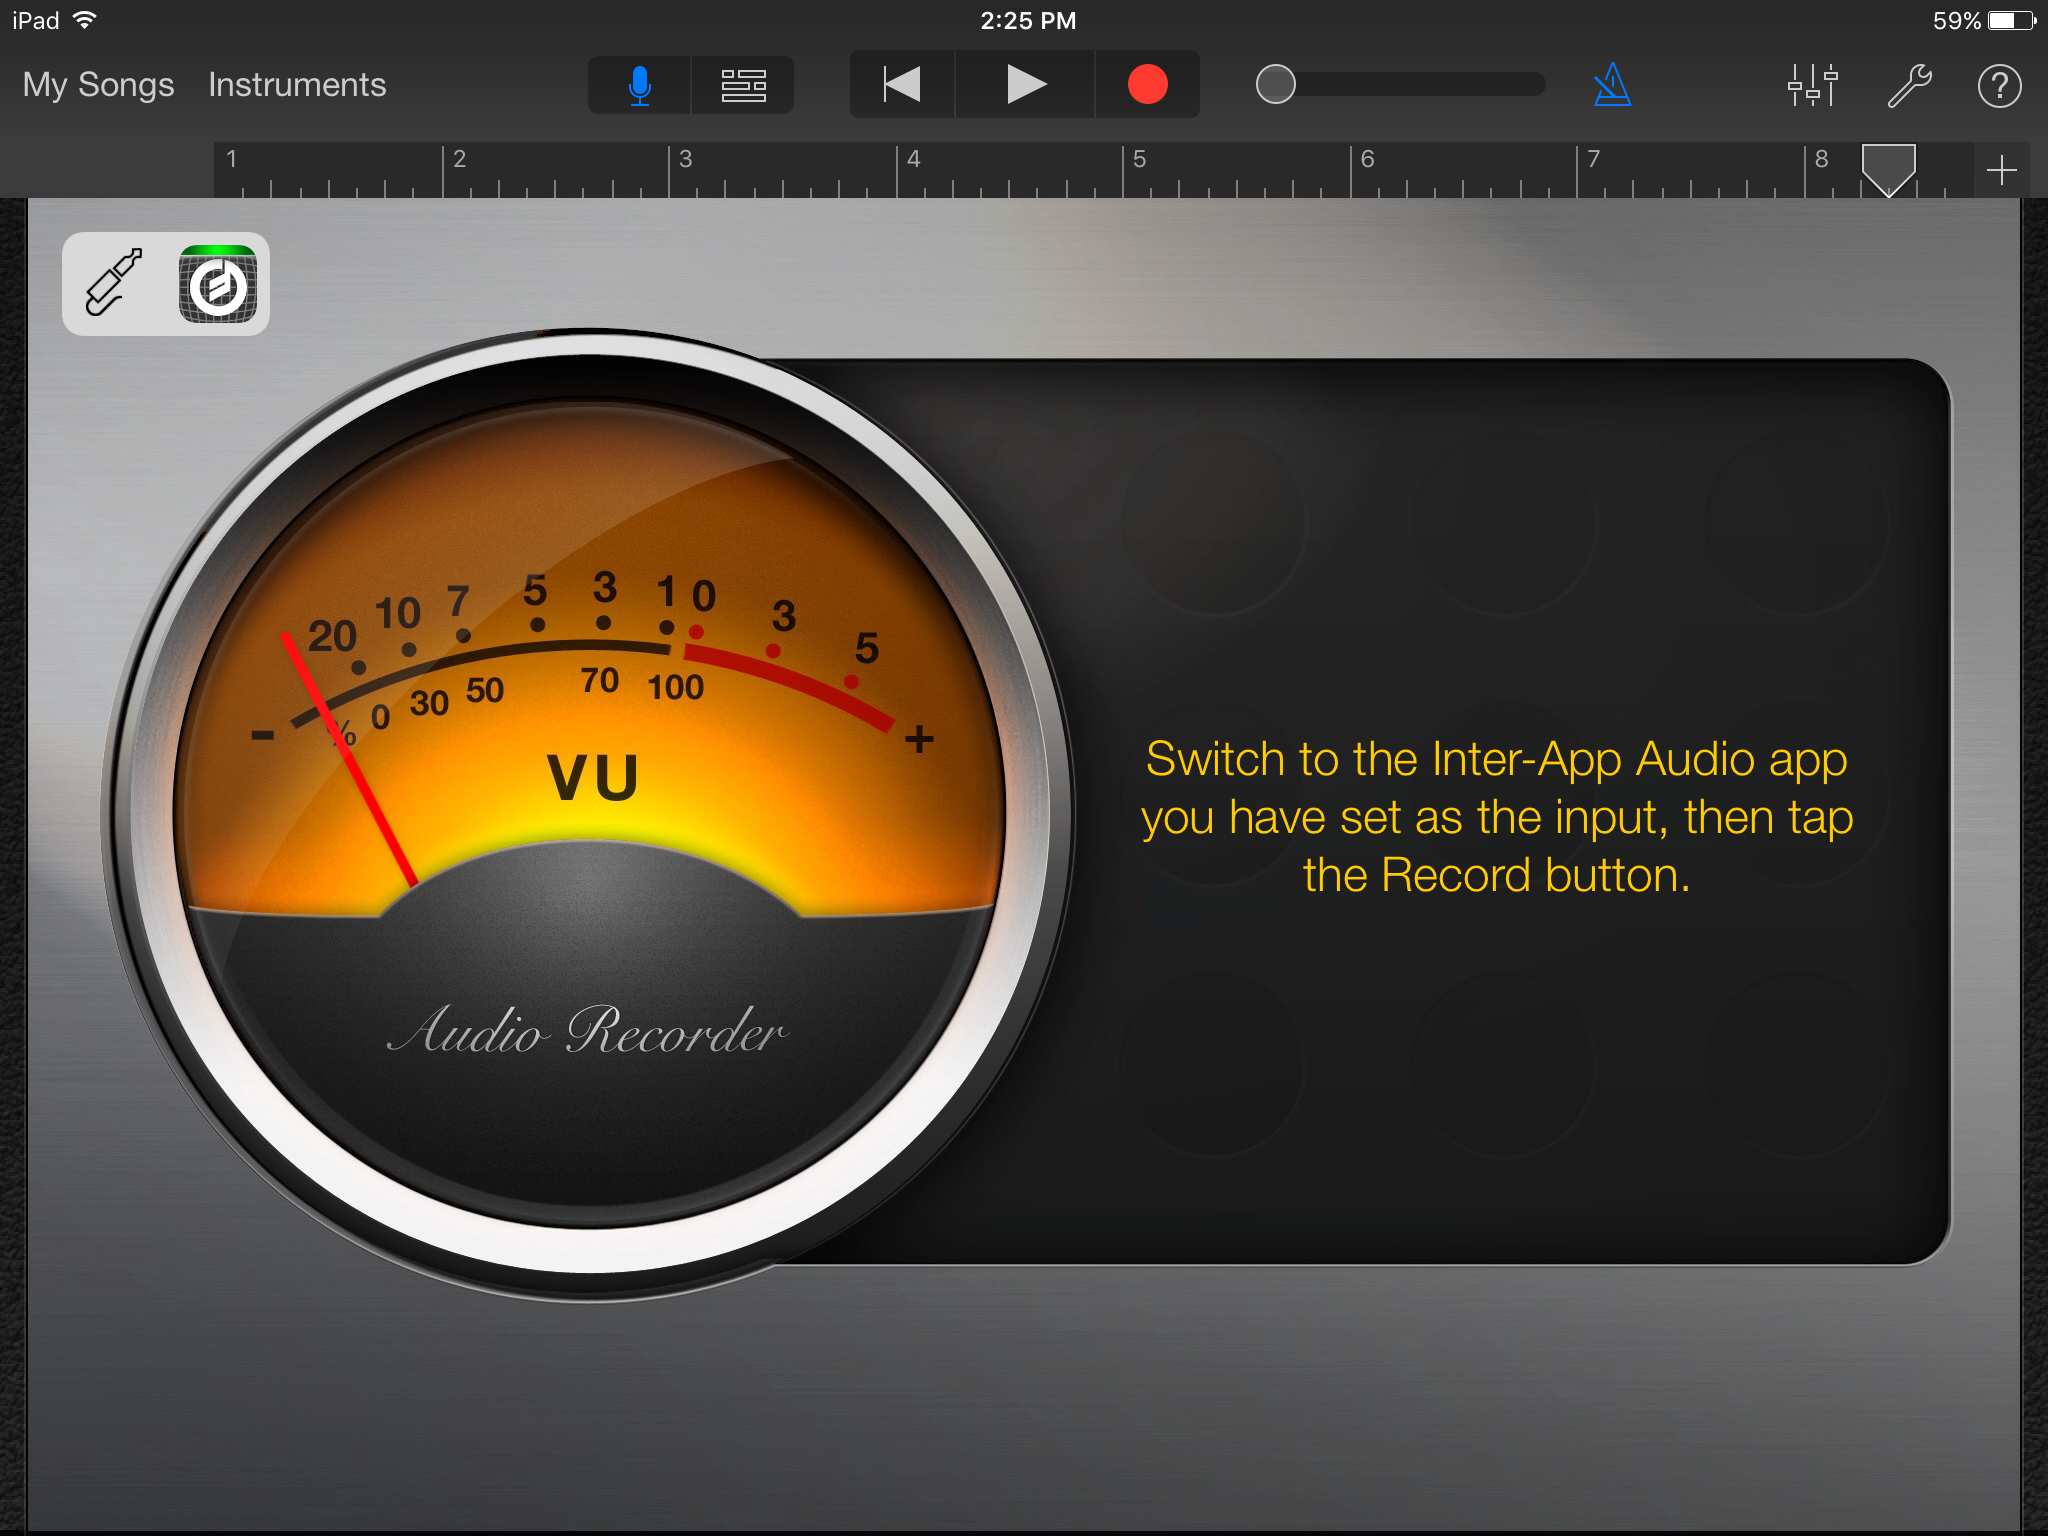 First look: Using Apple's new Audio Unit plug-ins in iOS 9 - 9to5Mac